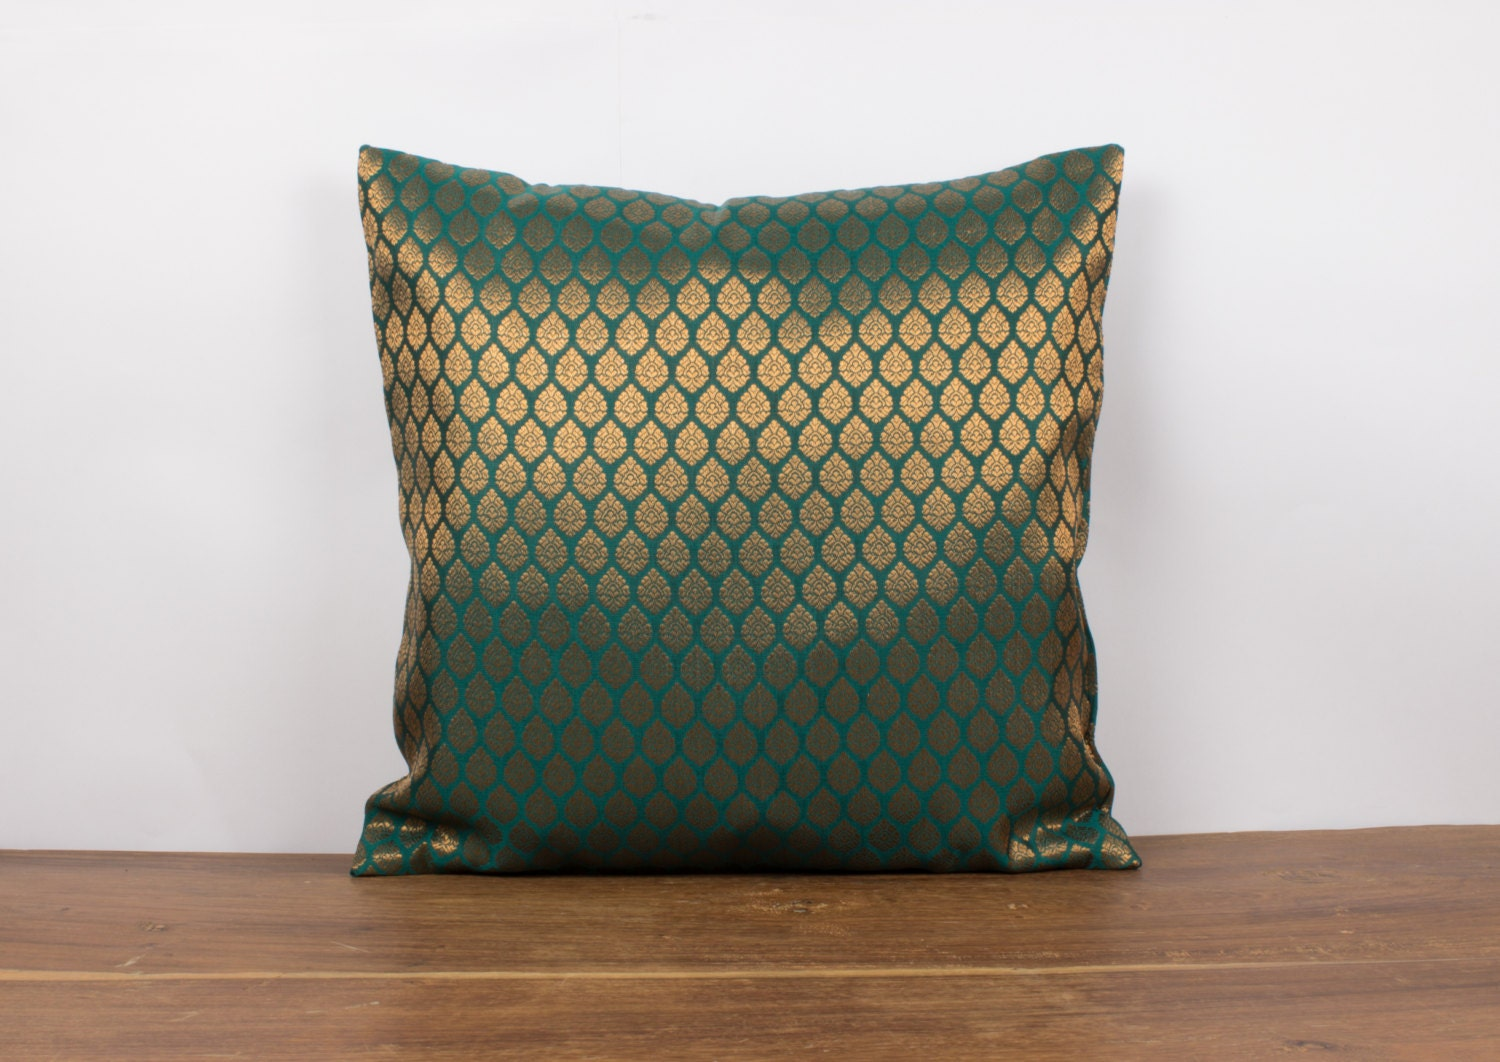 Green Silk Throw Pillow : Emerald Green Silk Pillow Decorative throw pillow by Fabricasia